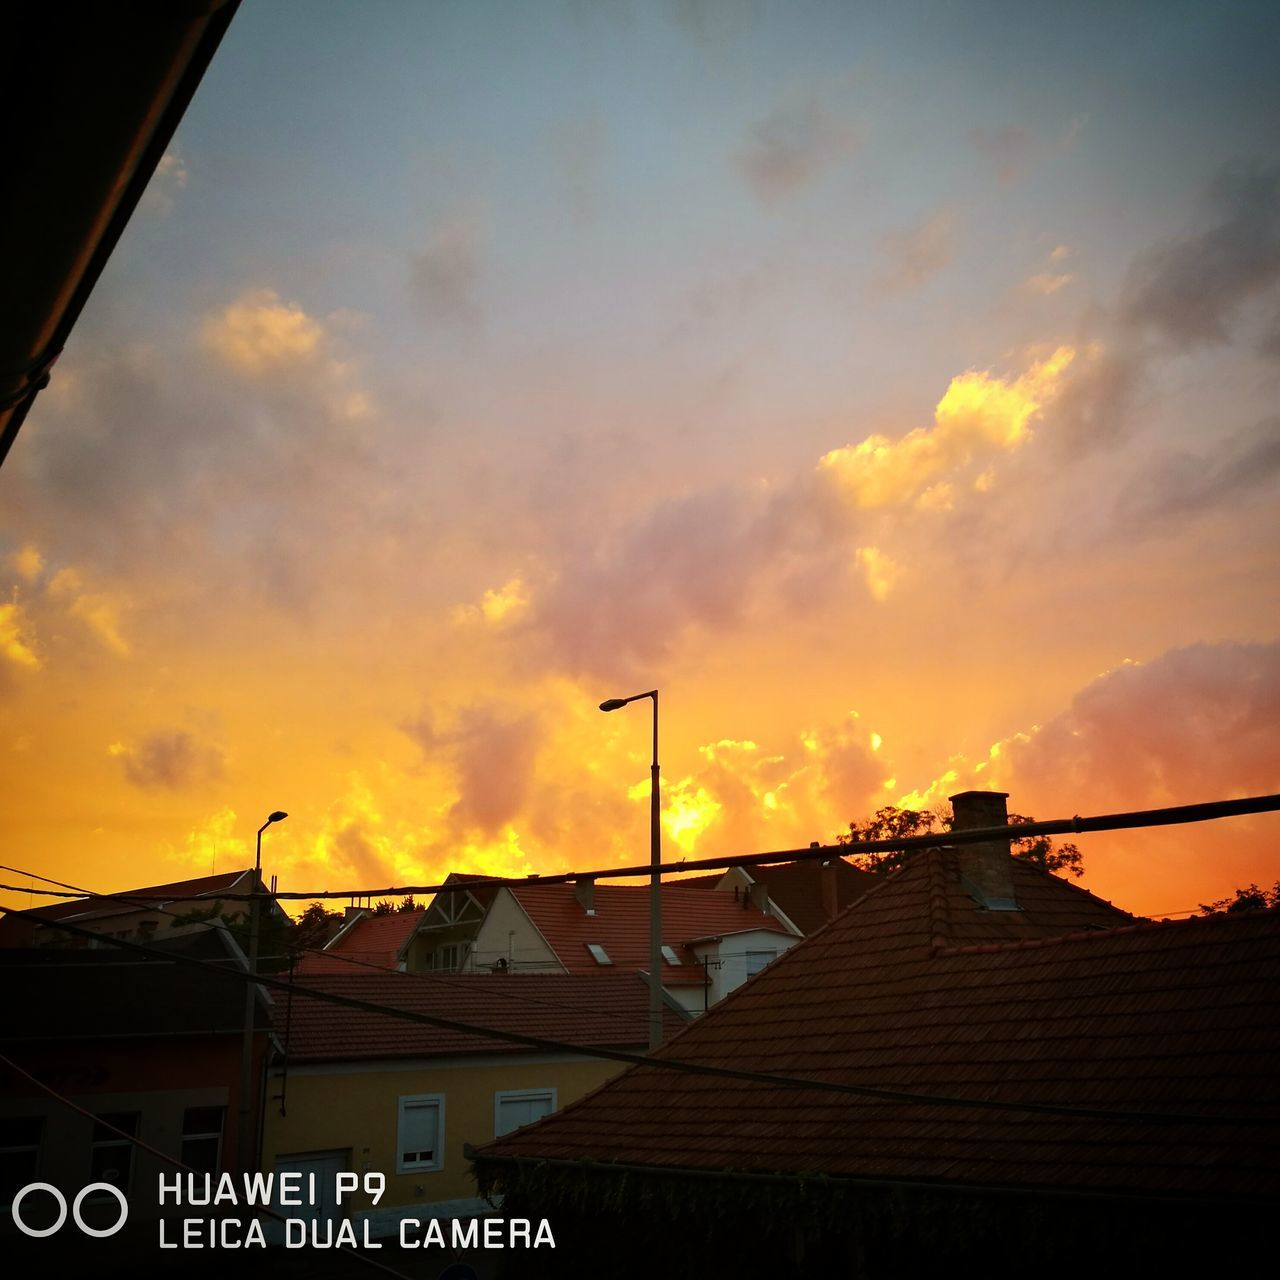 sunset, architecture, built structure, building exterior, communication, low angle view, sky, cloud - sky, no people, roof, outdoors, television aerial, nature, day